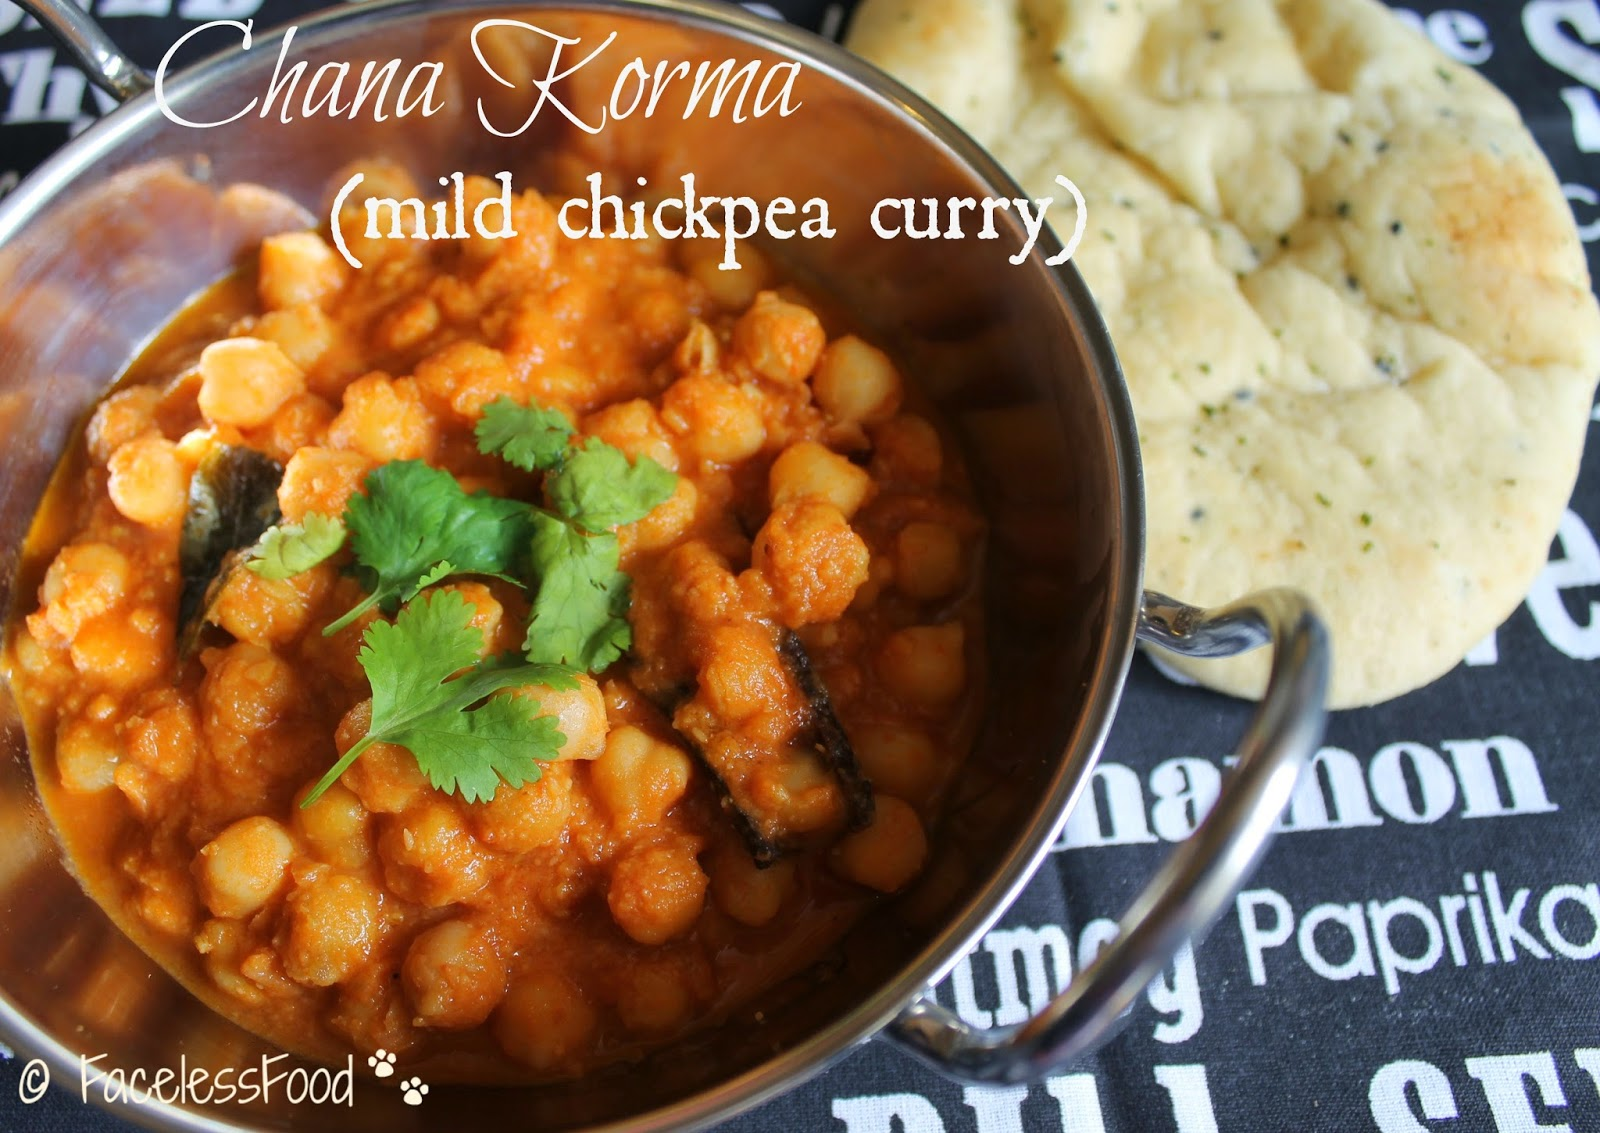 Chana Korma (mild chickpea curry)